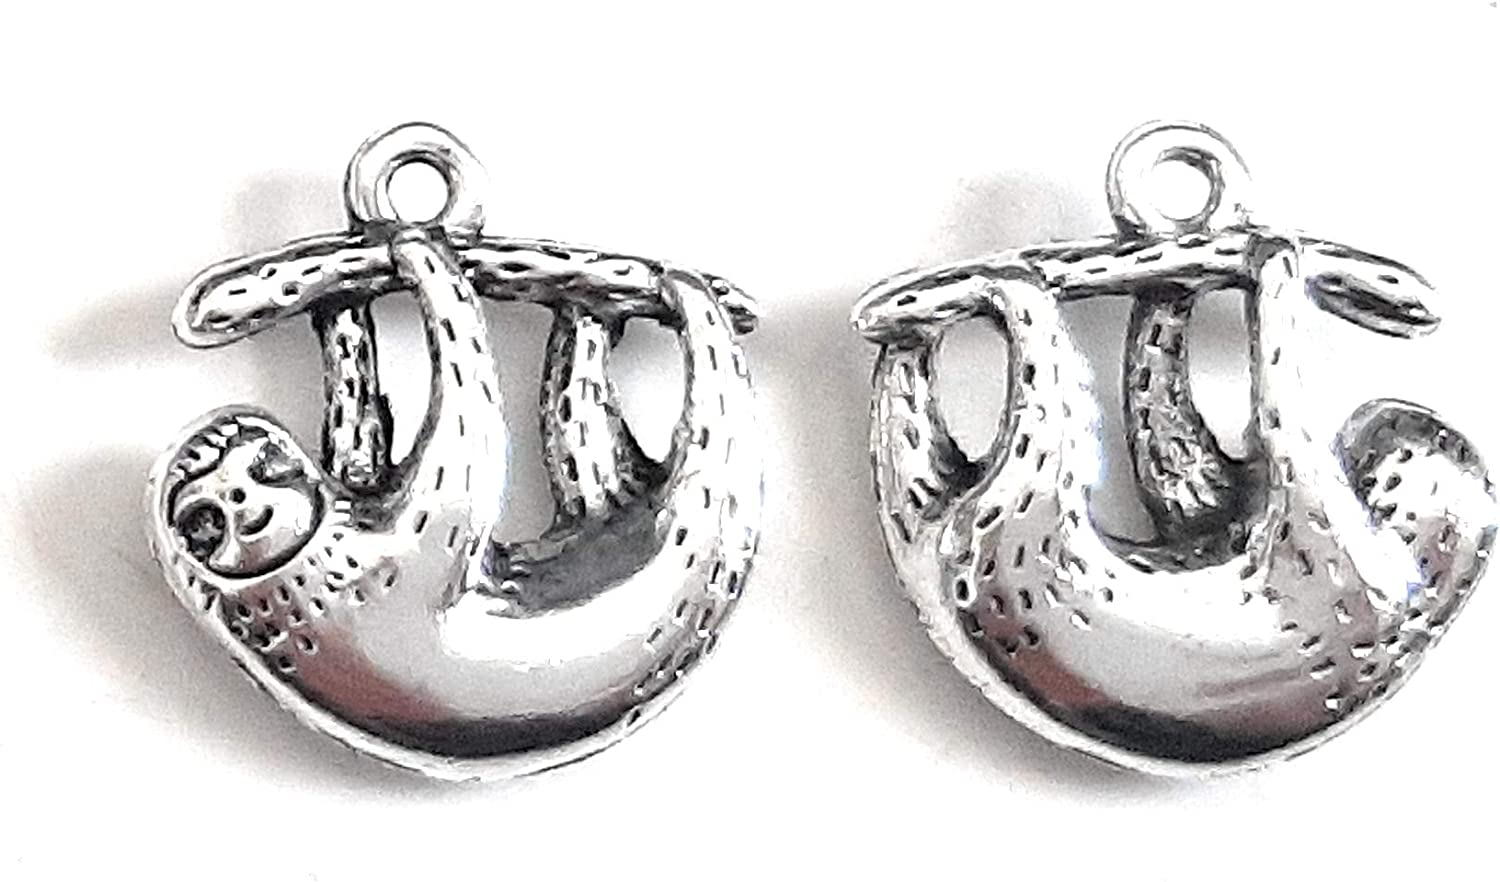 30 Antique Silver Charms Set outlet DIY Bulk Jewelry Quantity limited fo Making Supplies